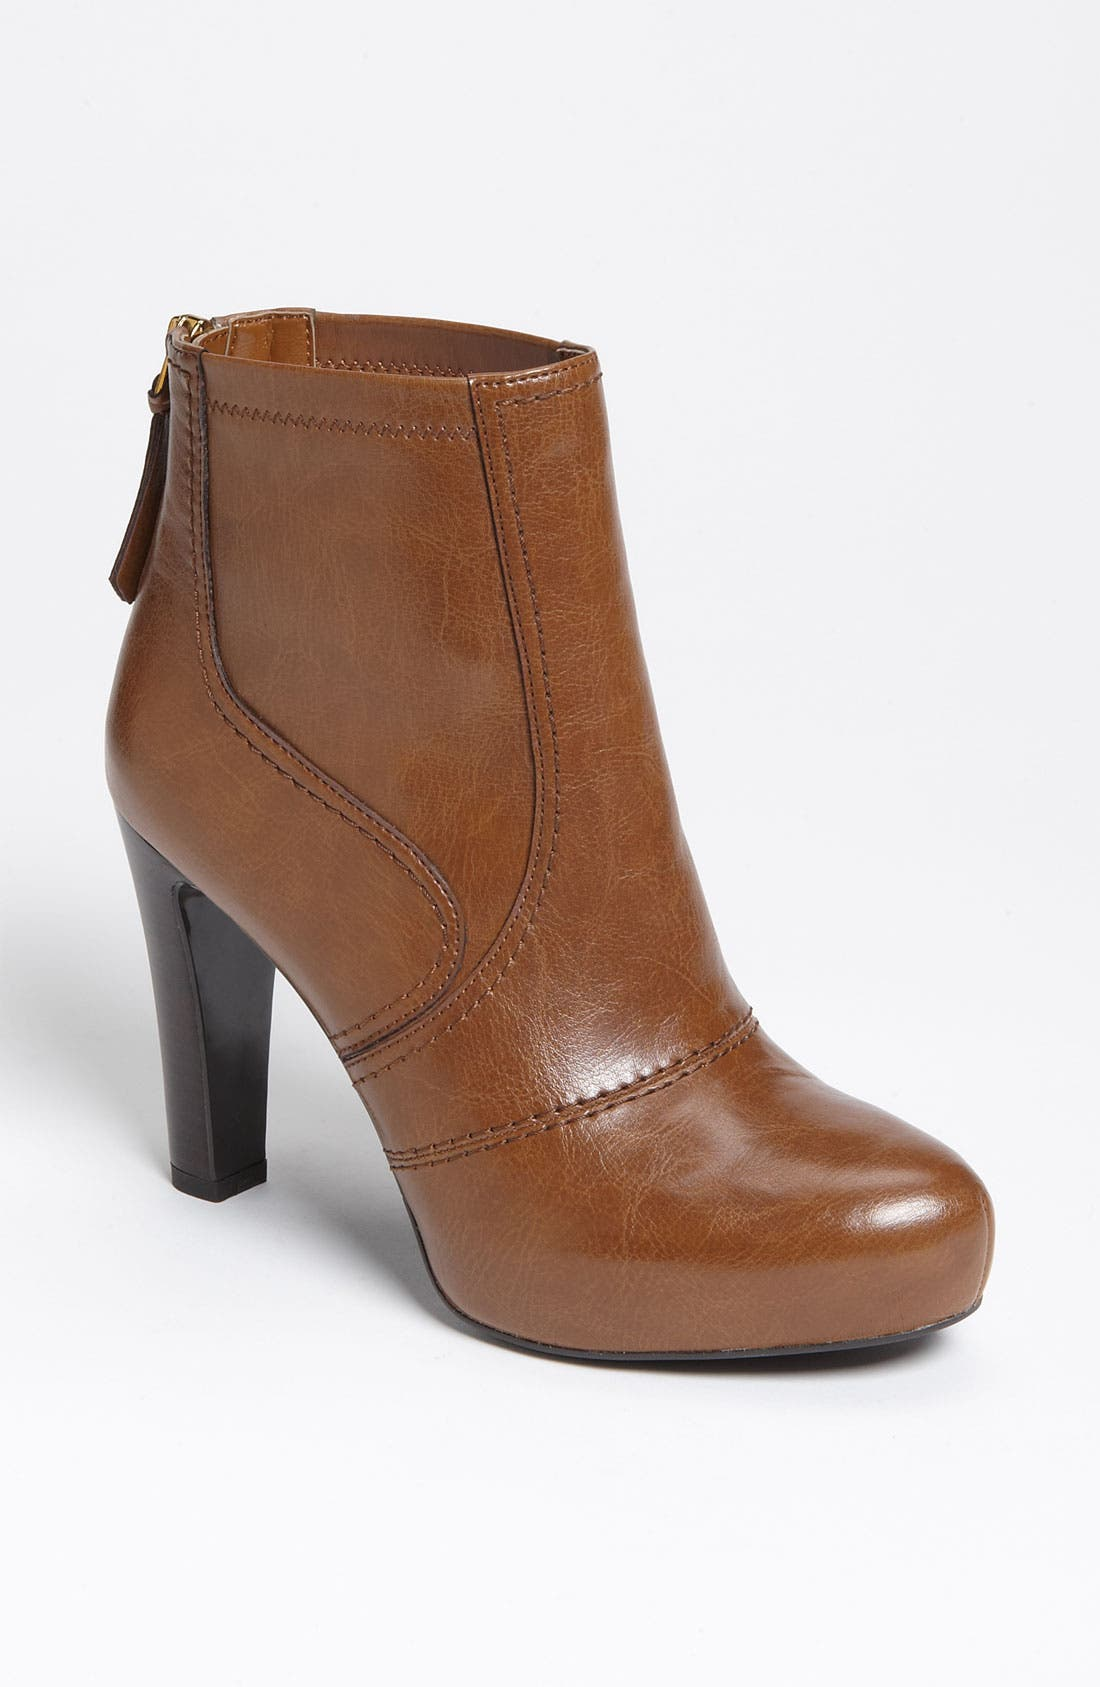 Main Image - Franco Sarto 'Learn' Boot (Special Purchase)